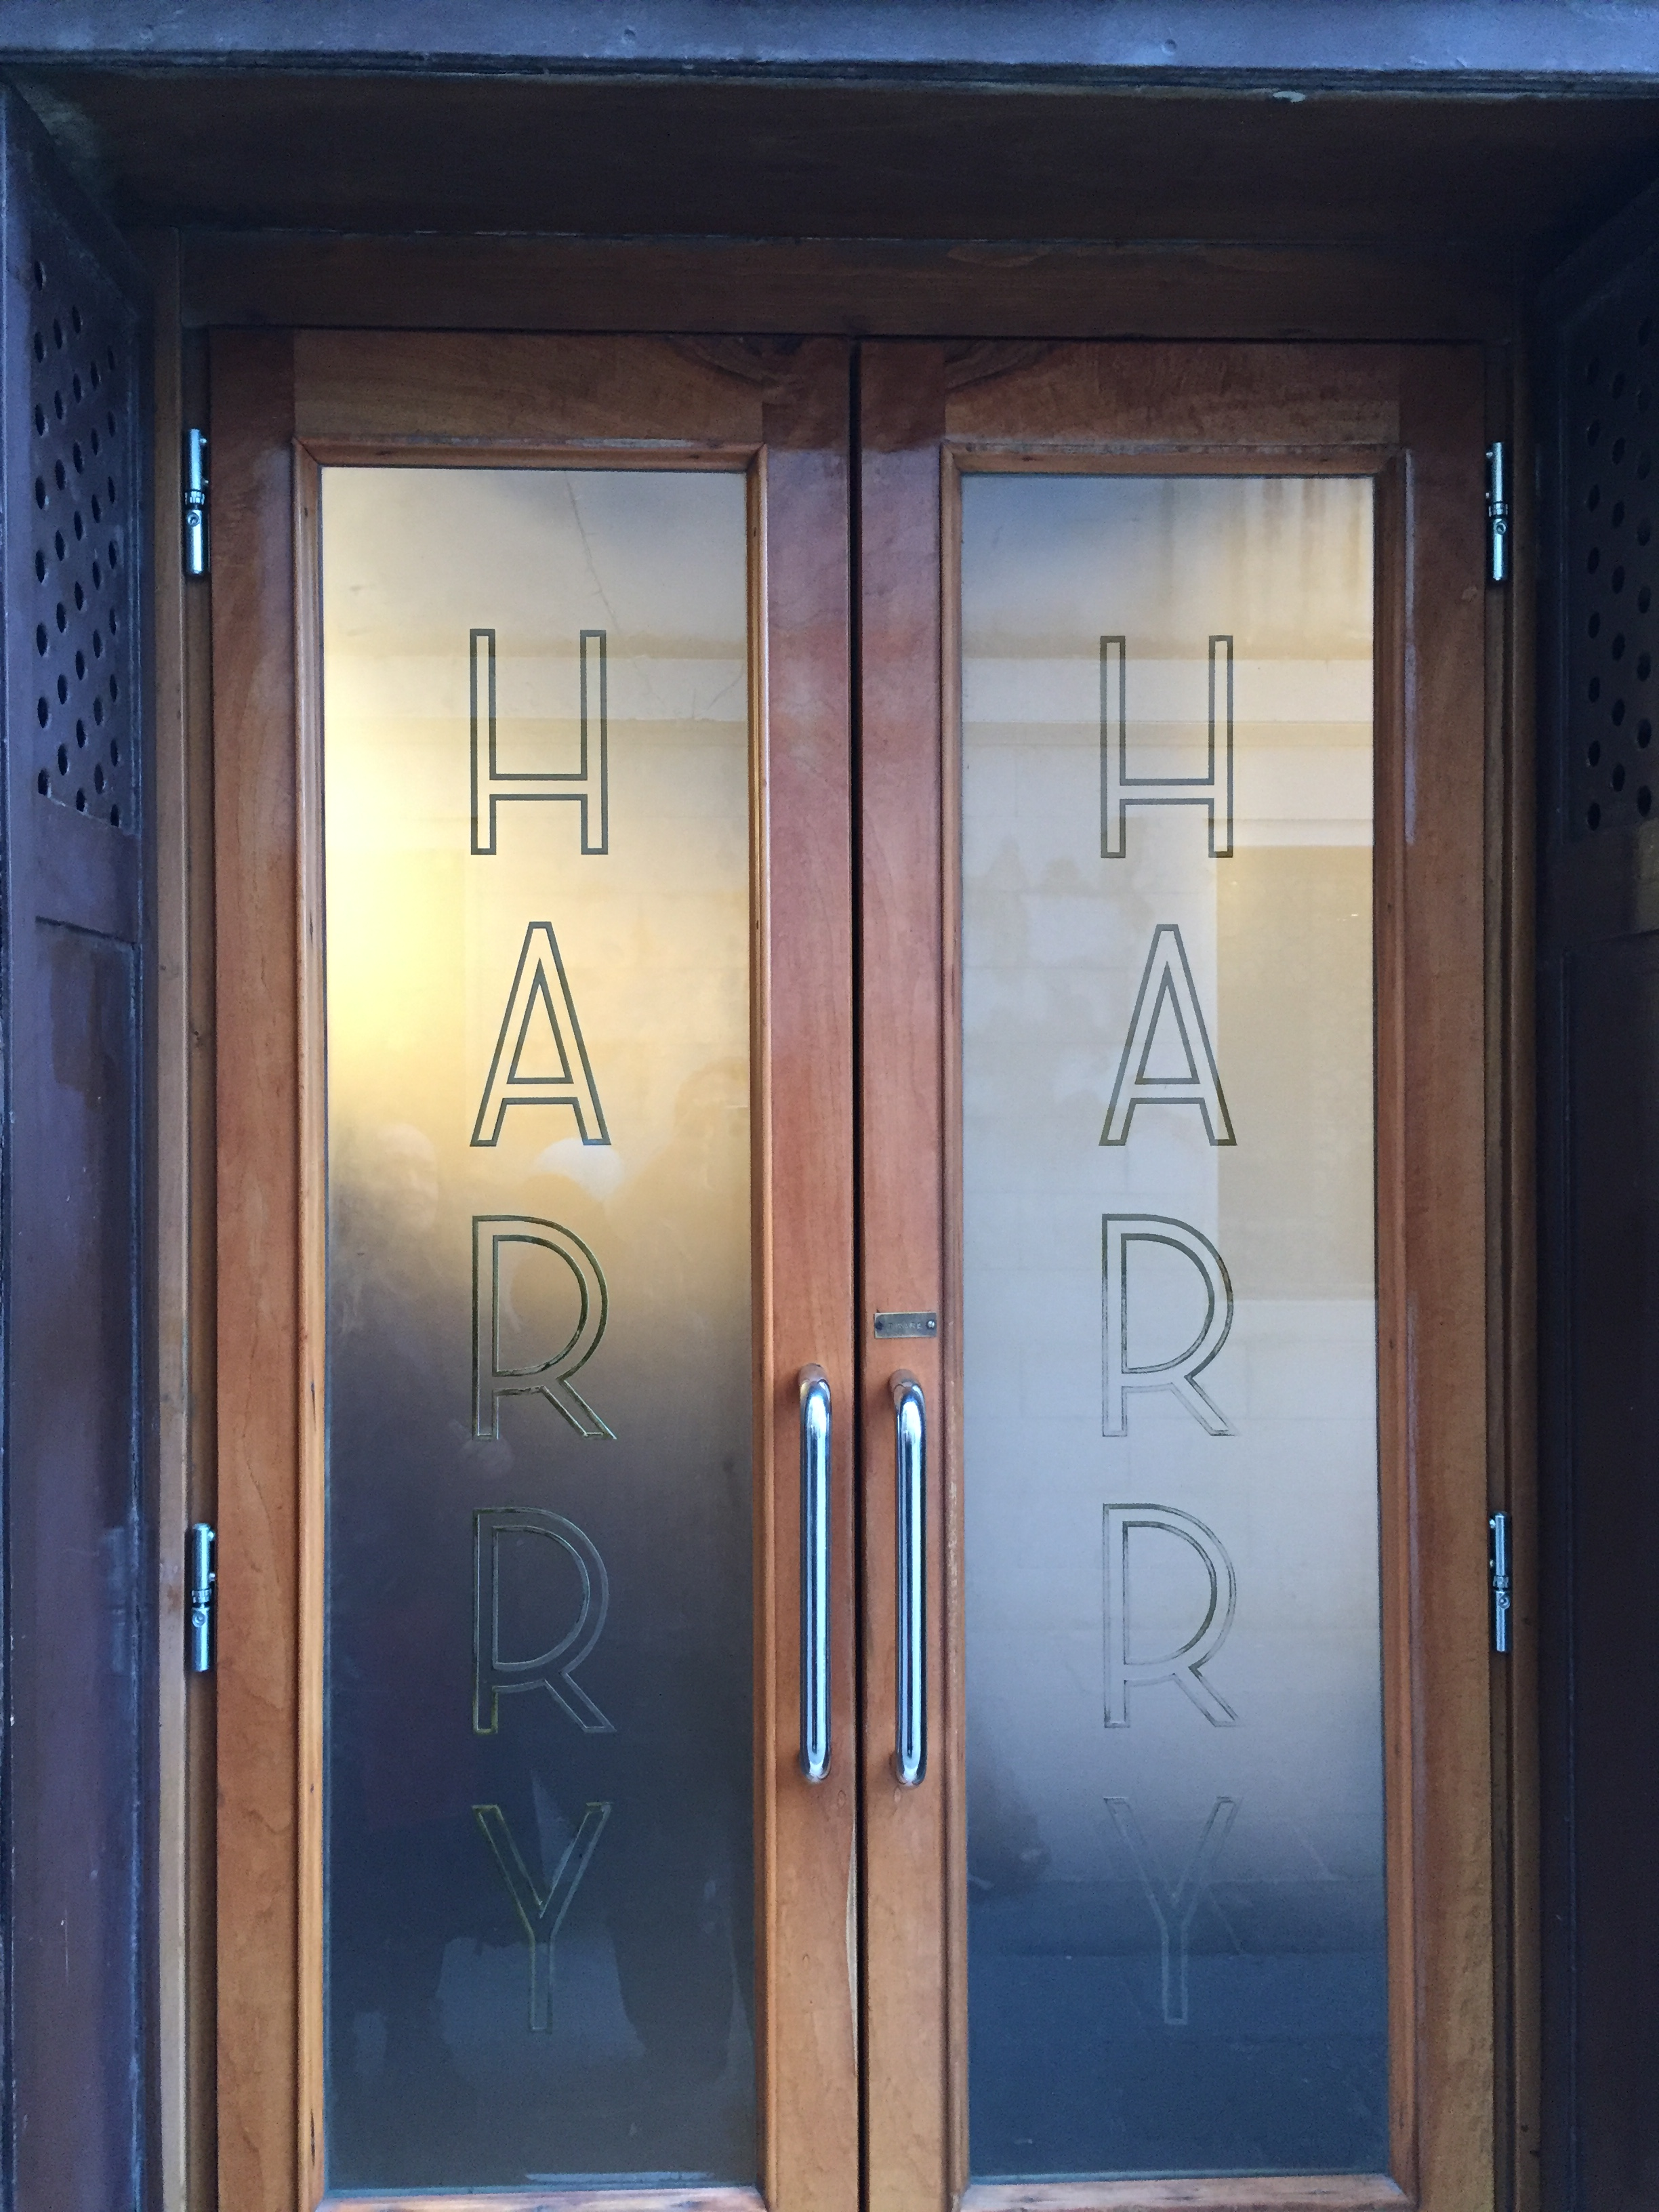 Can the literary romance of Harry's Bar possibly live up to its reality? Photo credit: L. Tripoli